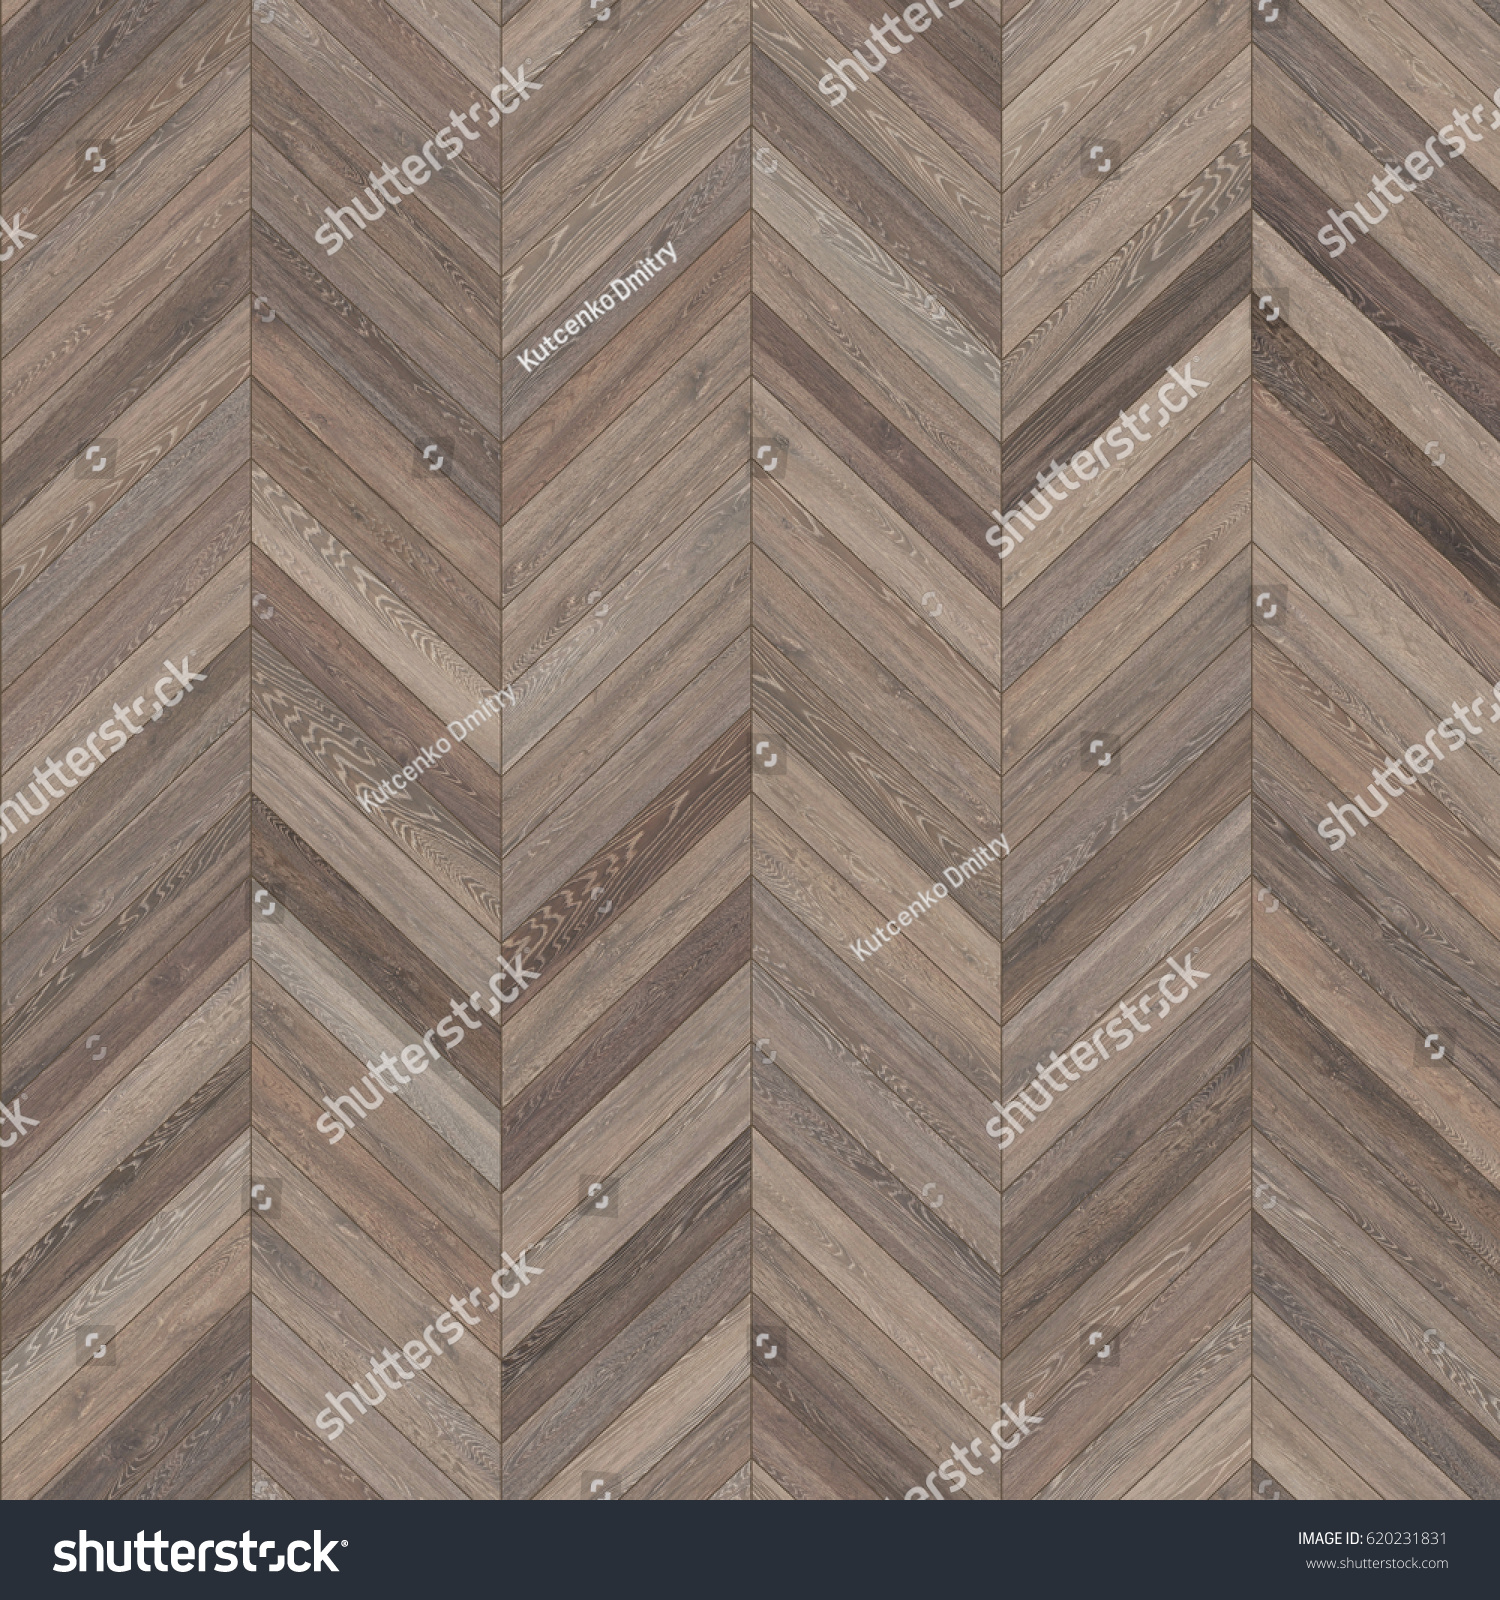 hires seamless wood parquet texture chevron stock photo 620231831 shutterstock. Black Bedroom Furniture Sets. Home Design Ideas